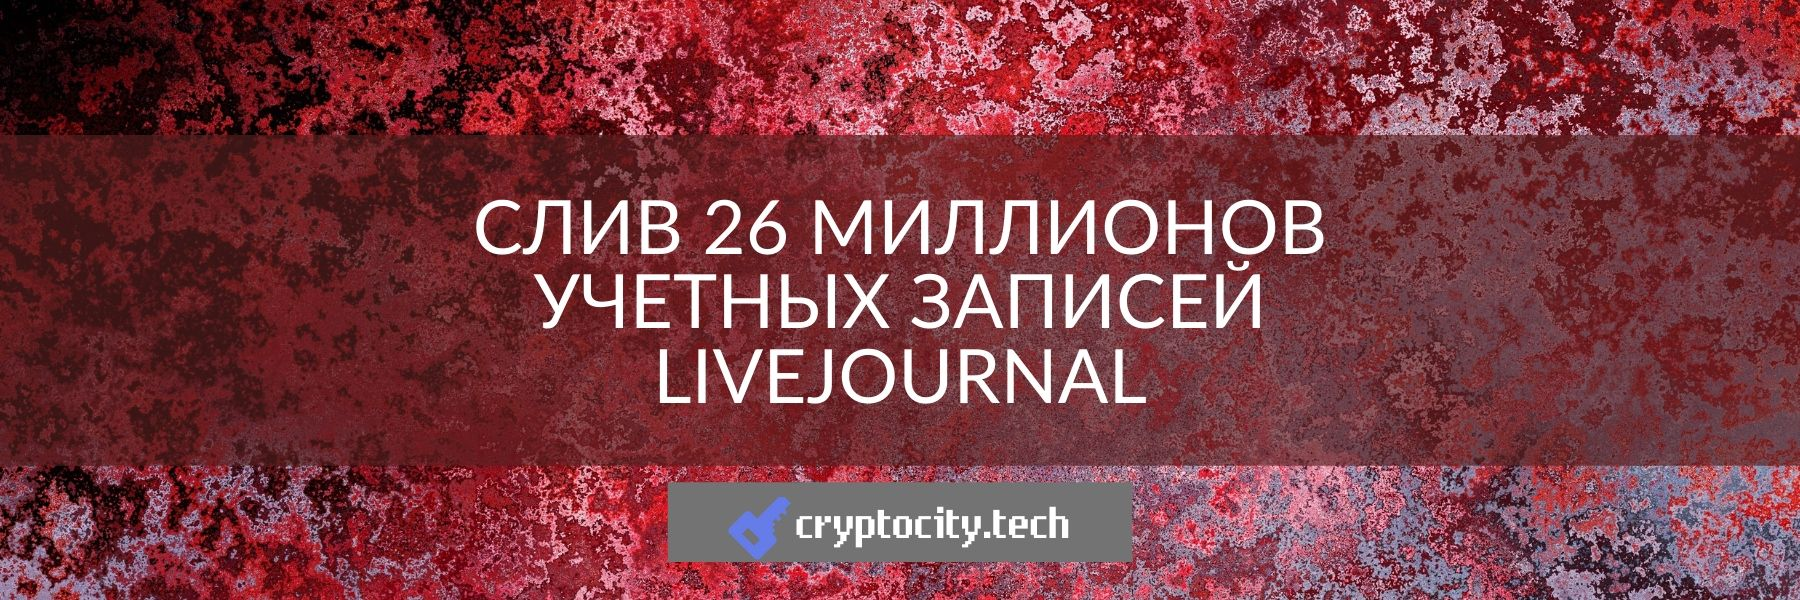 слив данных LifeJournal cryptocity.tech